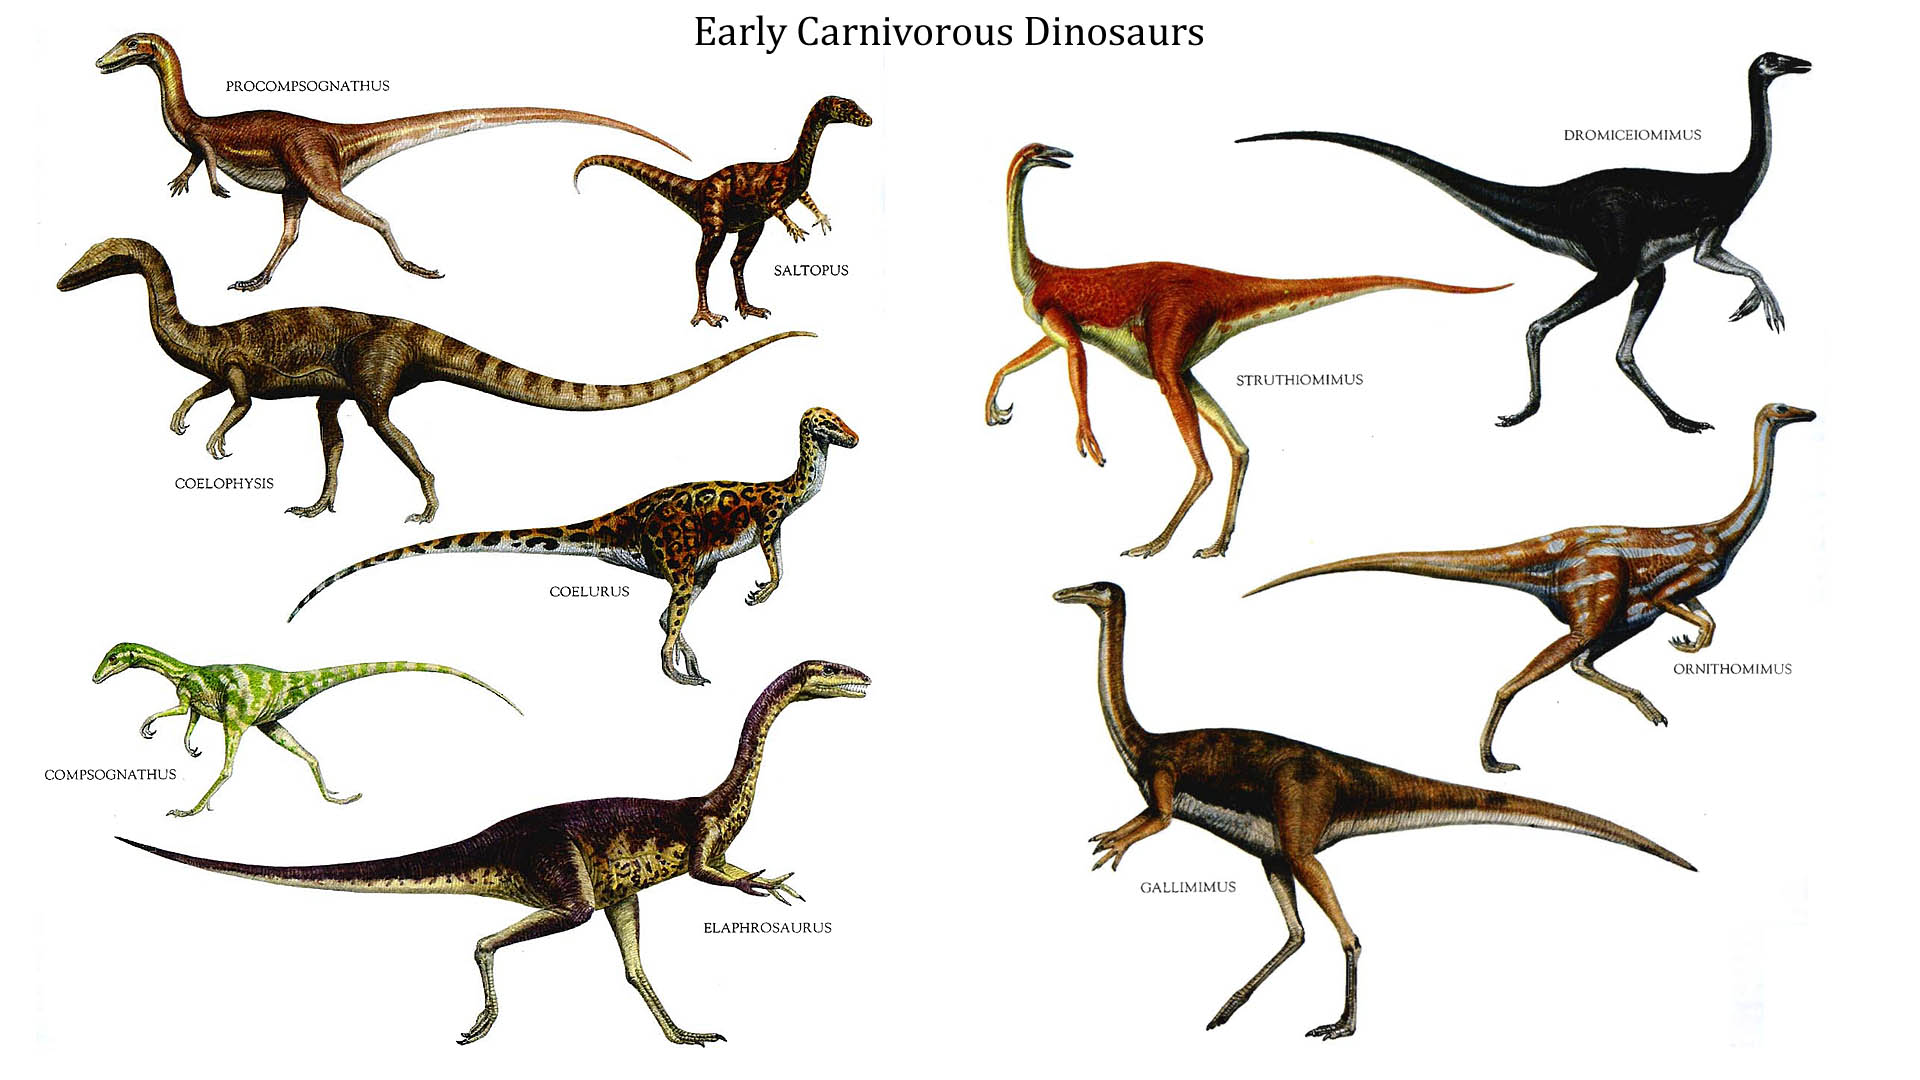 Early Carnivorous Dinosaurs